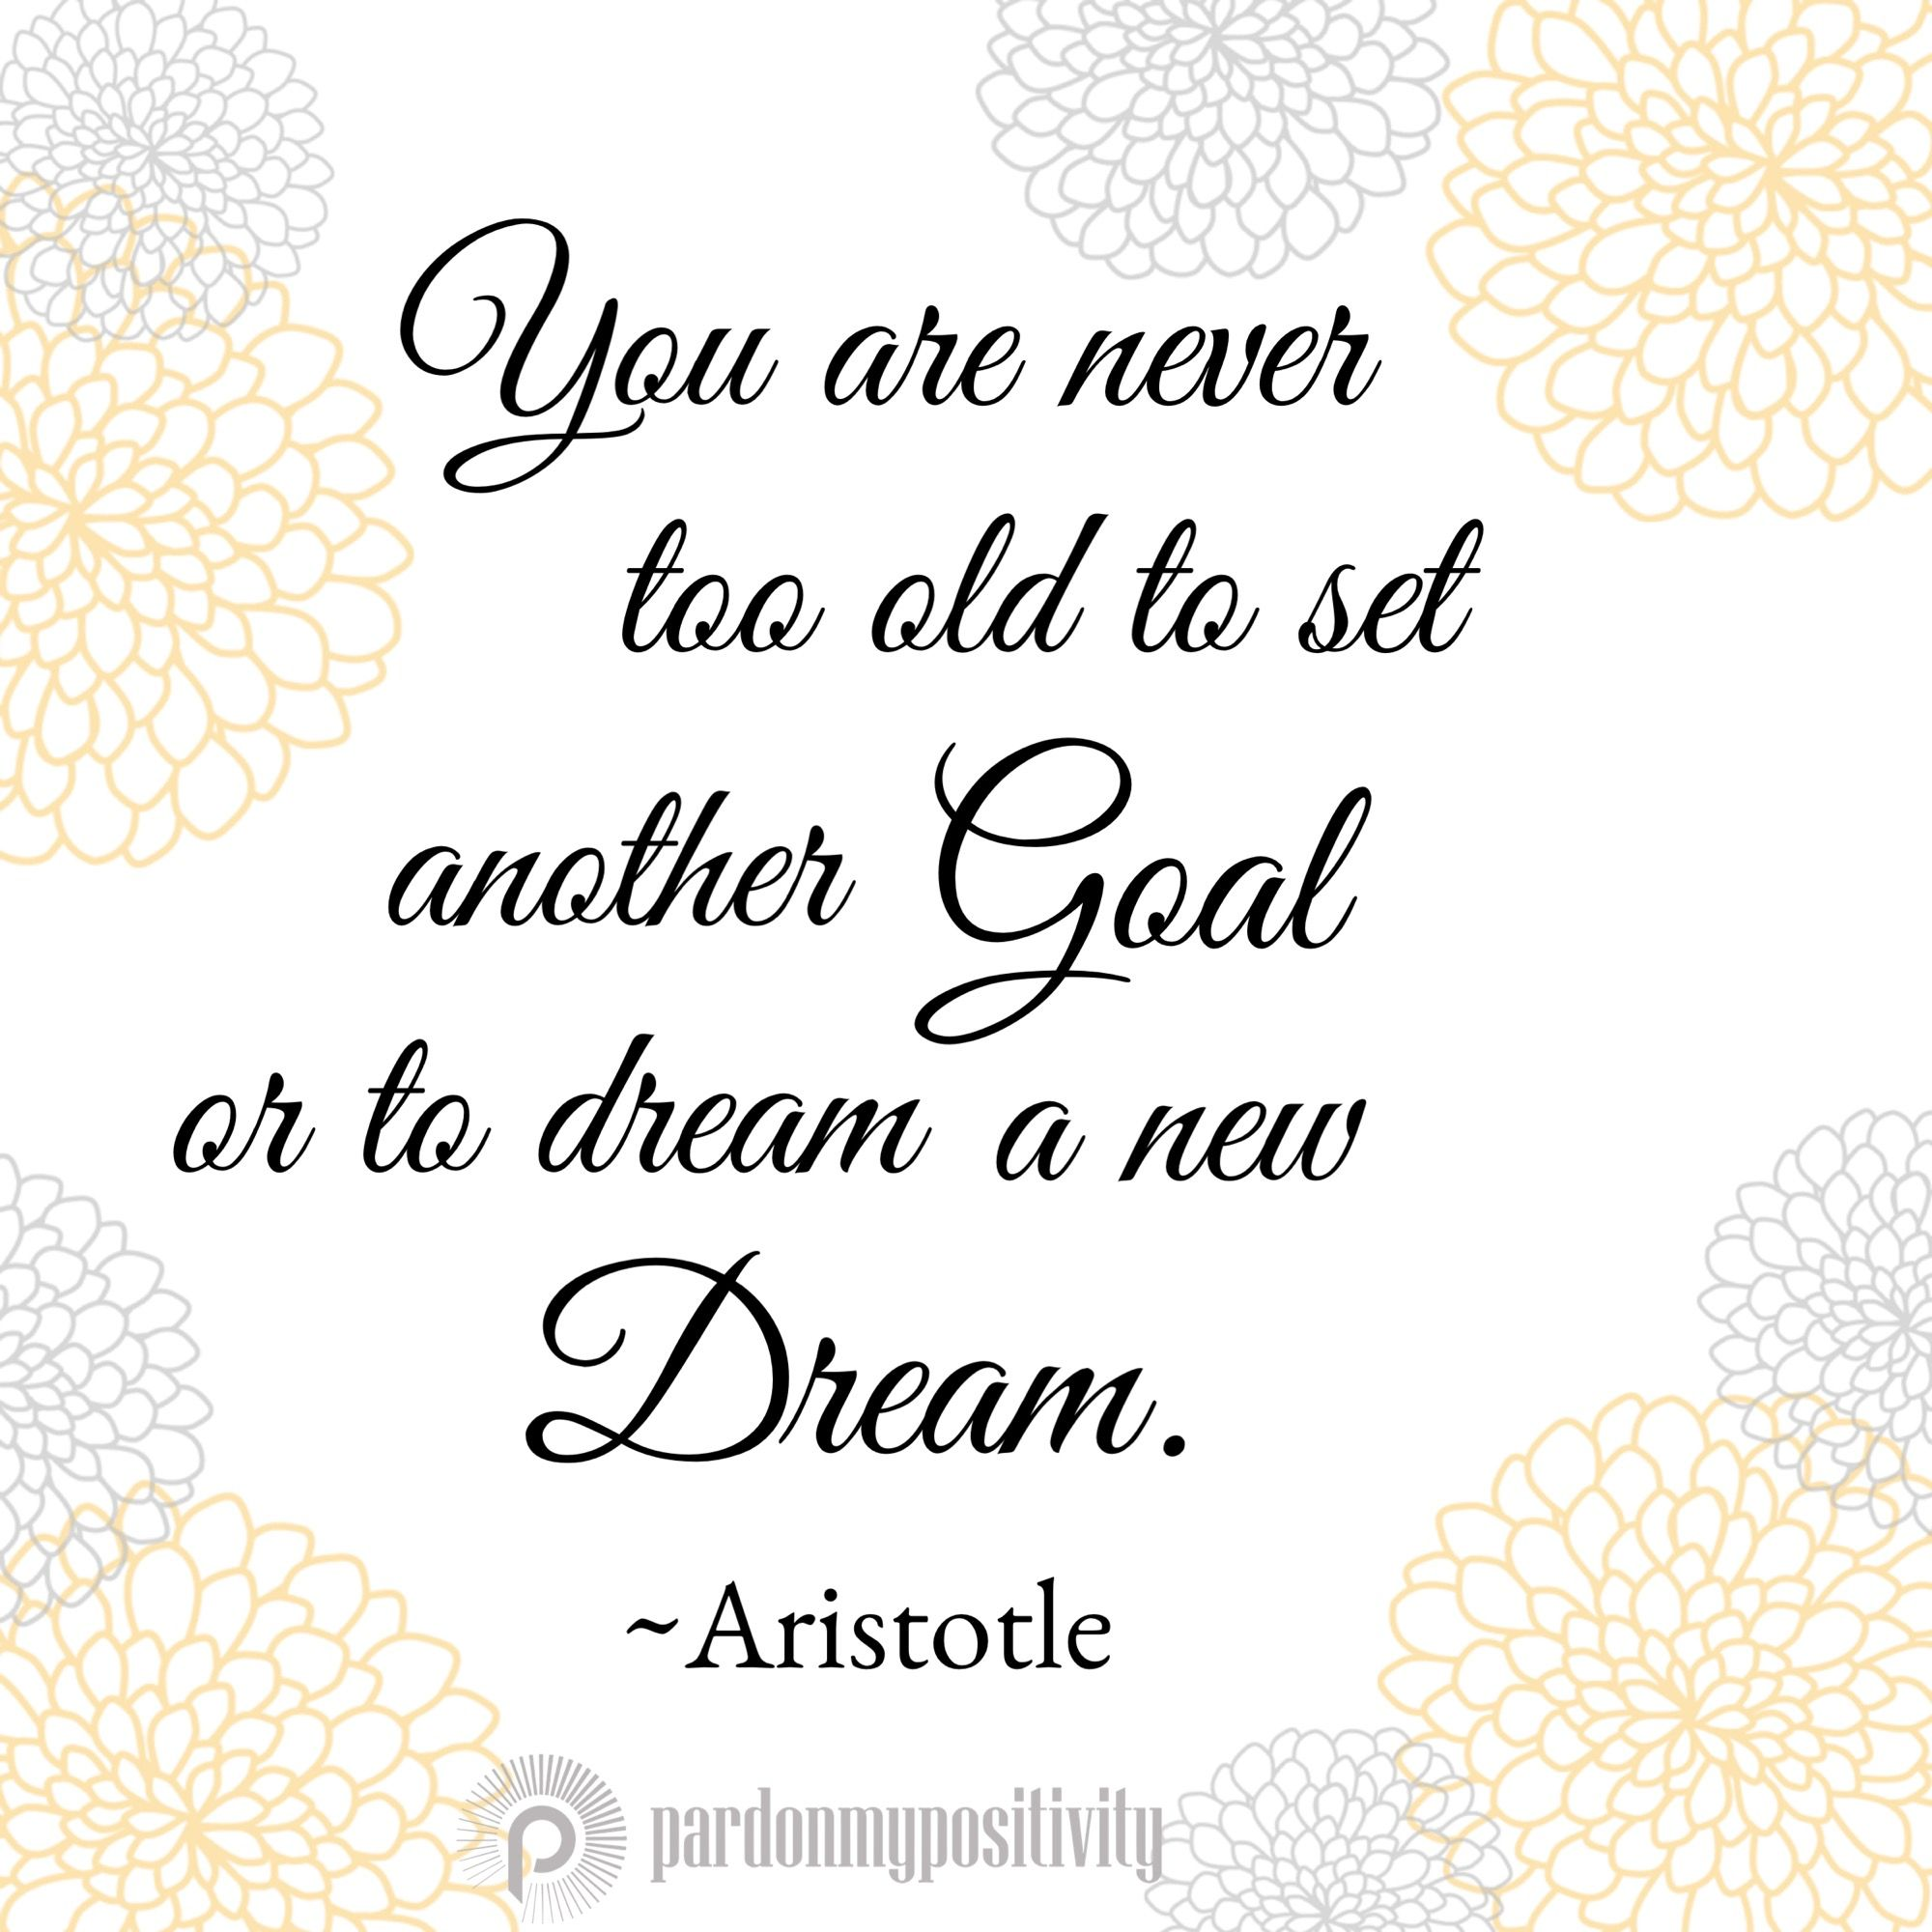 Aristotle Quotes On Happiness: You Are Never Too Old To Set A New Goal Or Dream A New